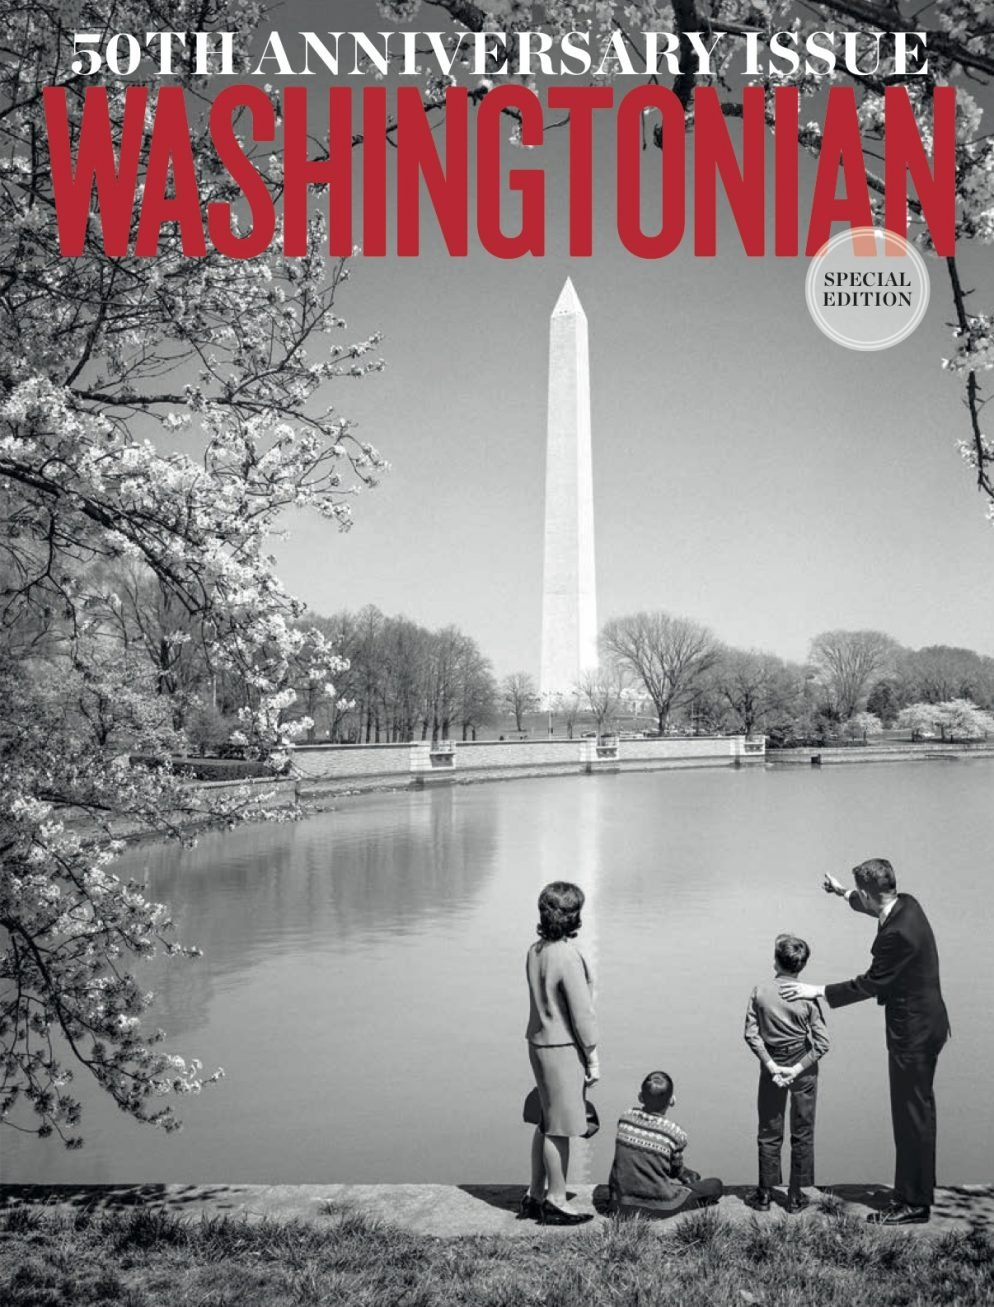 Washingtonian's 50th Anniversary Cover